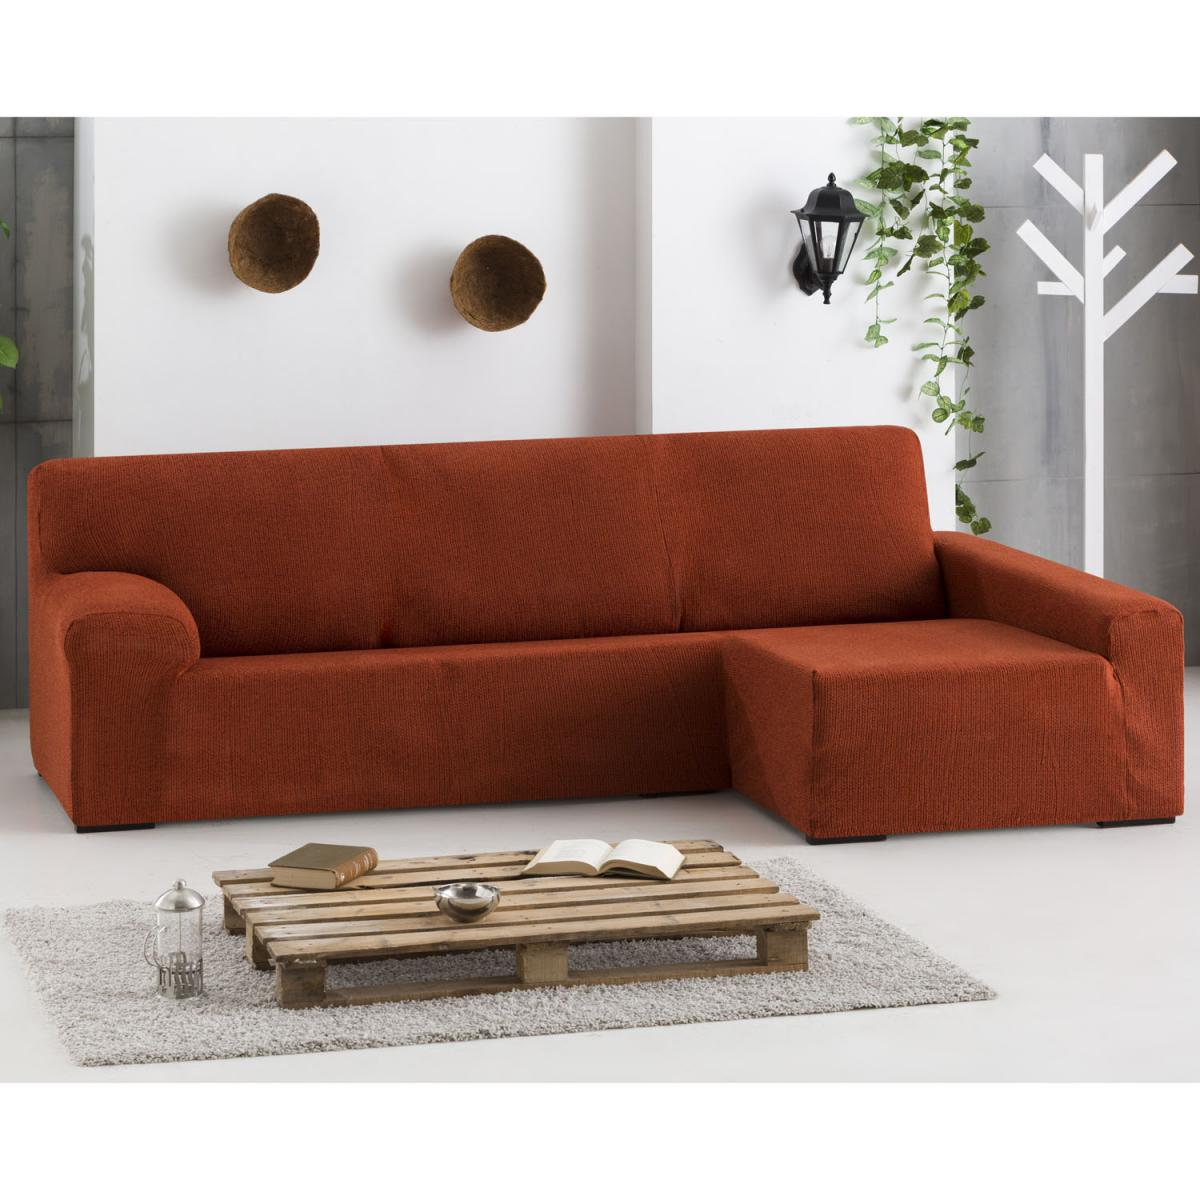 Funda sof chaise longue dorian eysa - Fundas de sofa con chaise longue ...